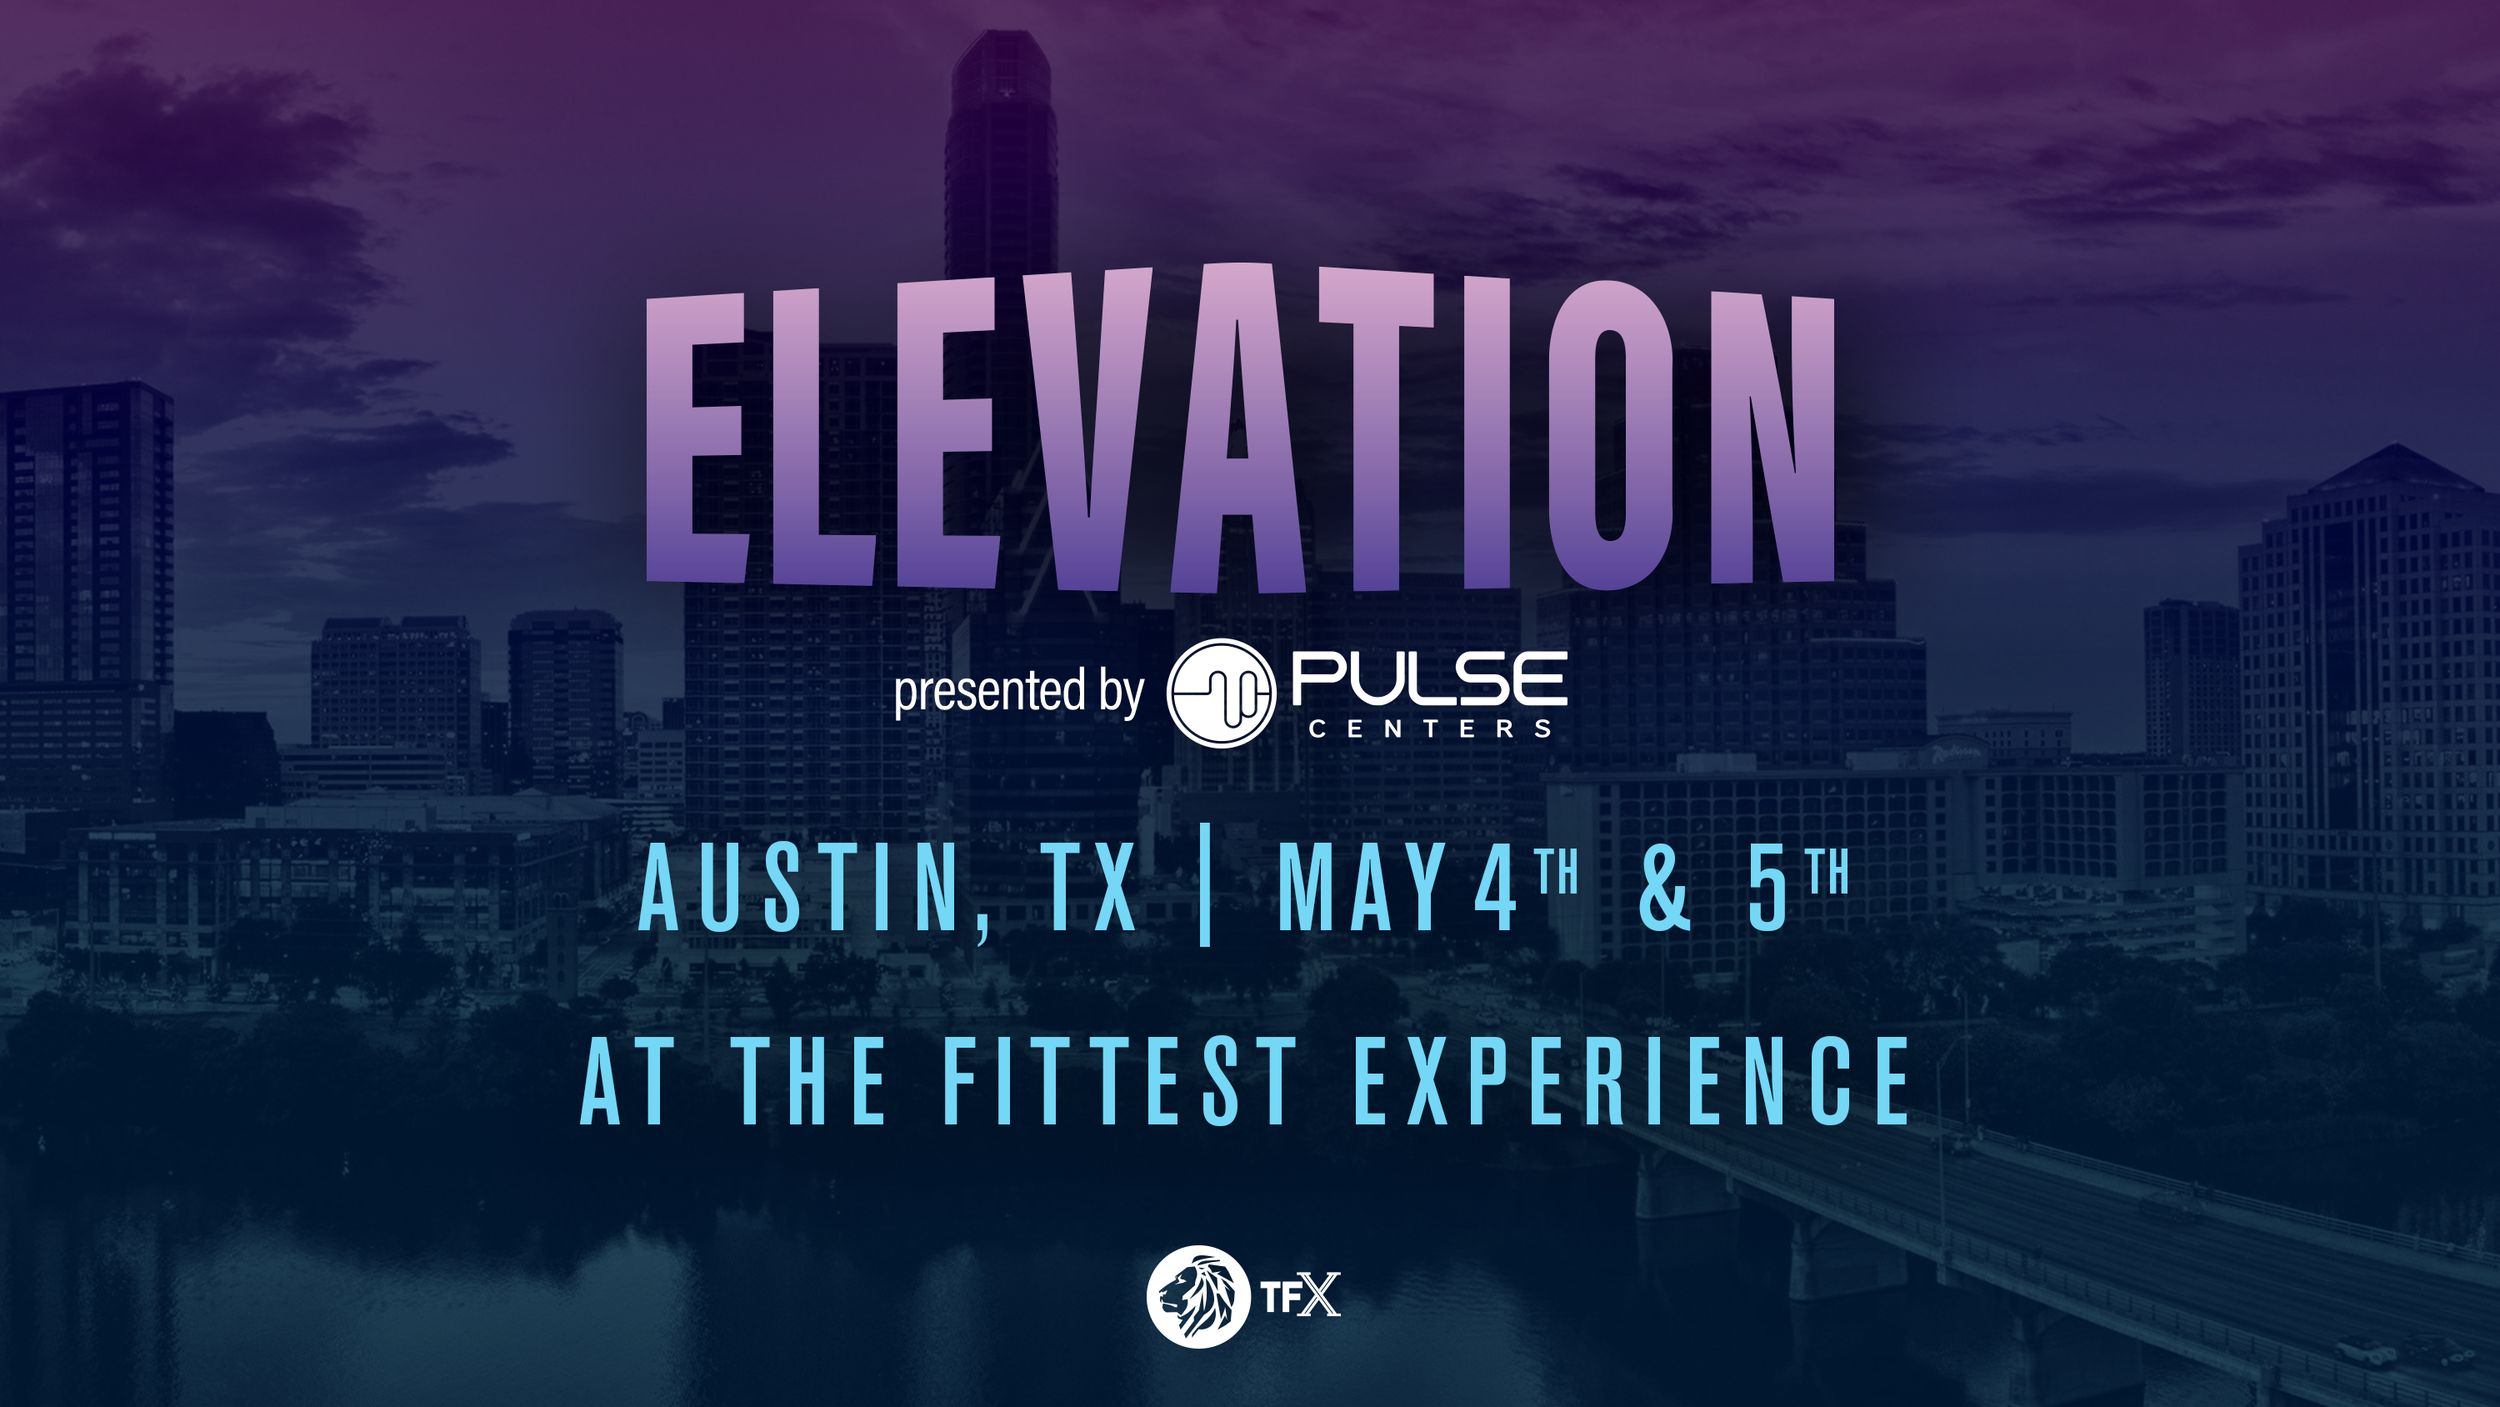 TFX_Elevation_Austin.png